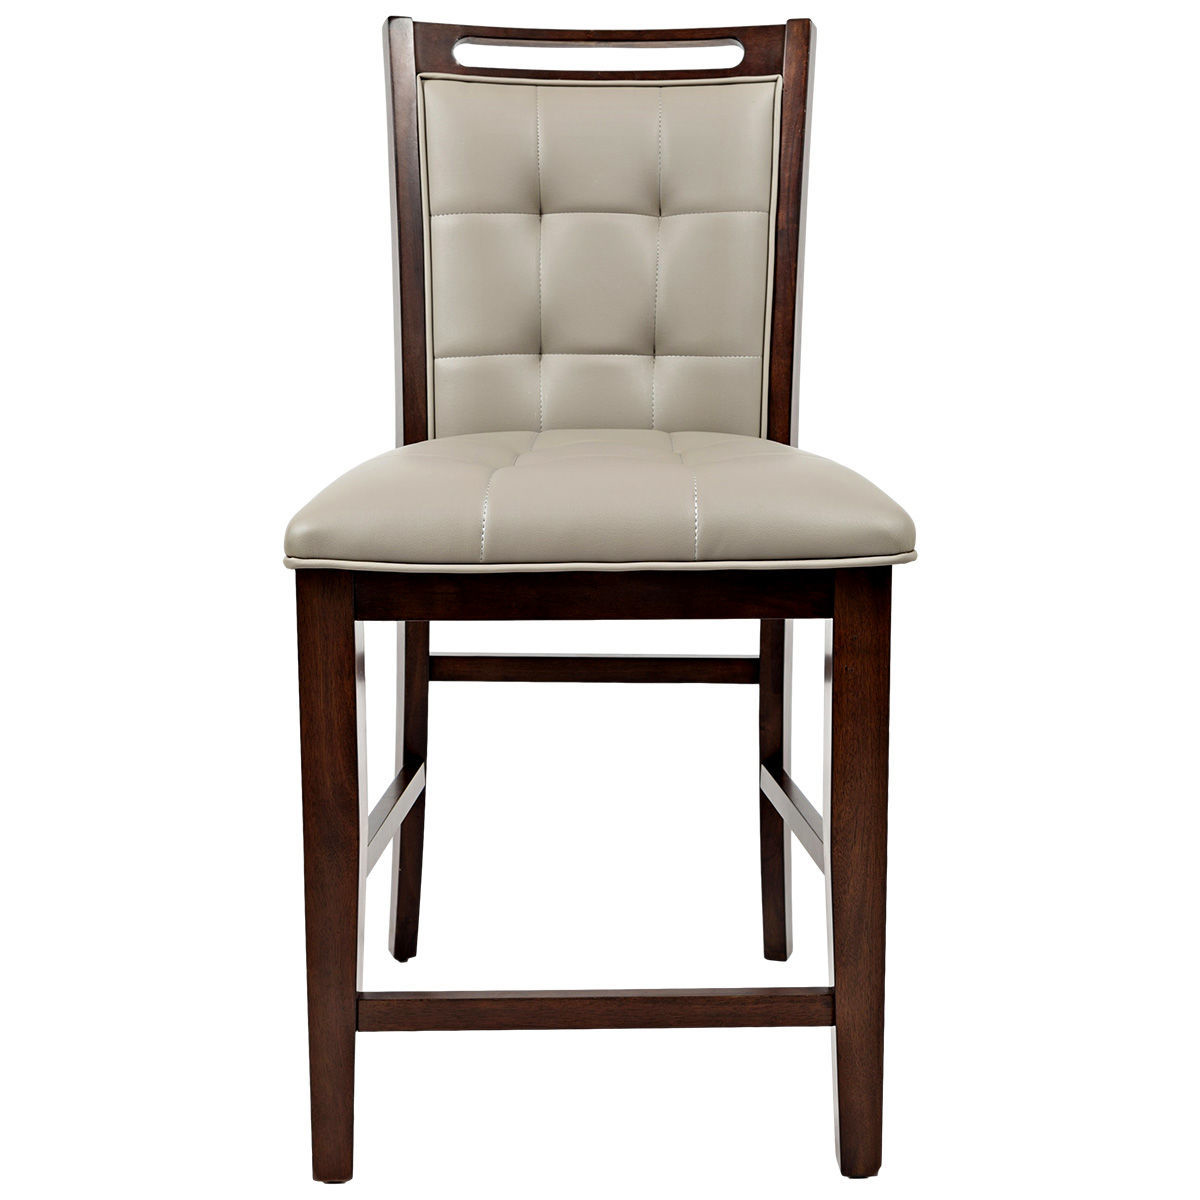 Picture of Manchester Upholstered Counter Stool